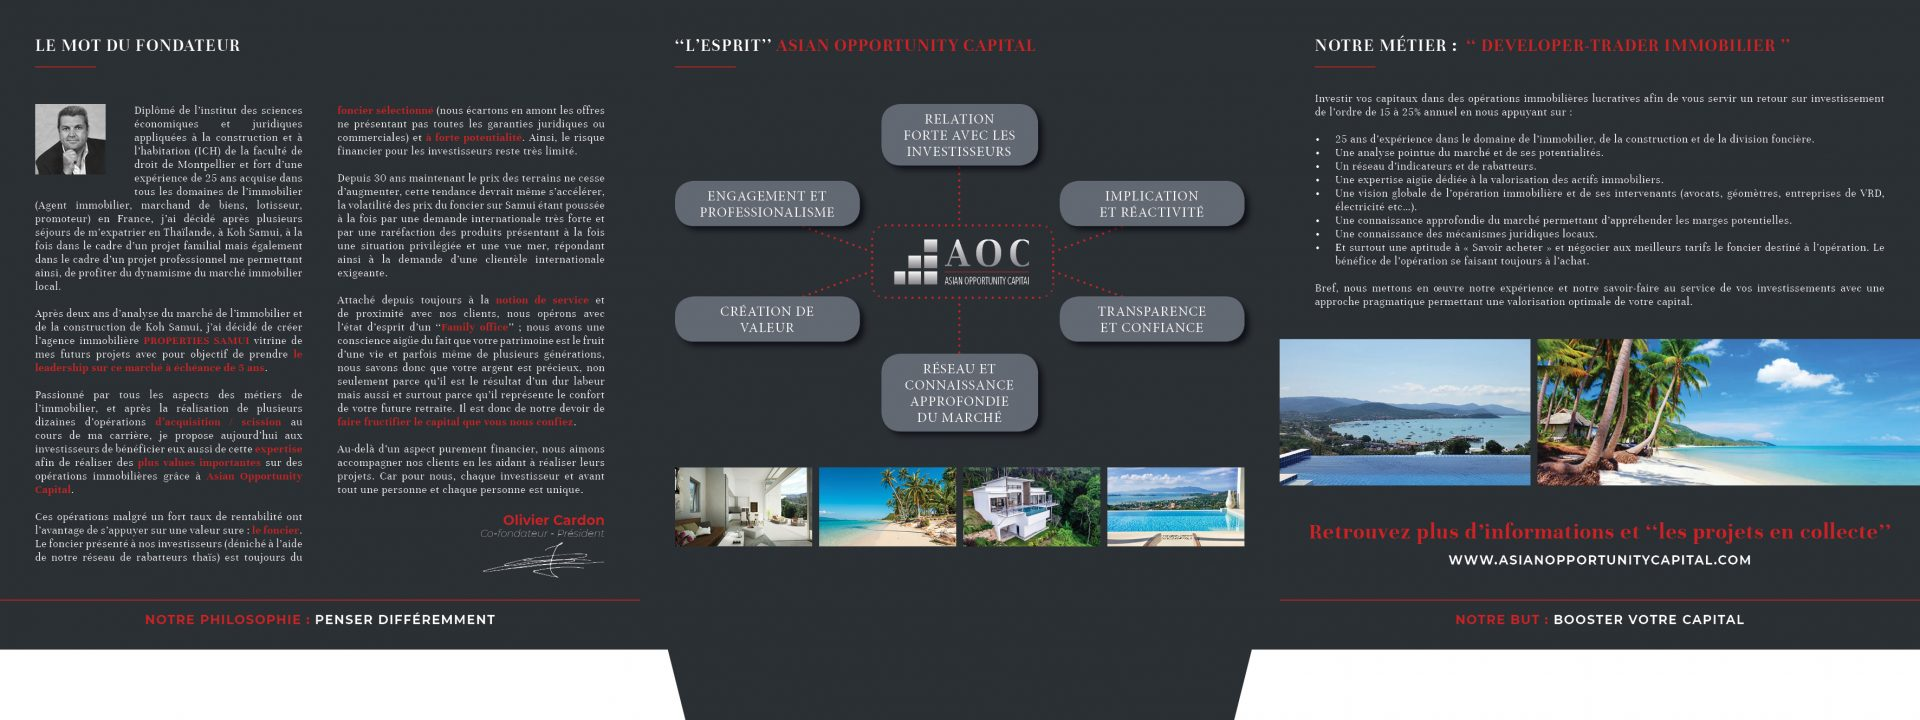 Brochure – Asian Opportunity Capital